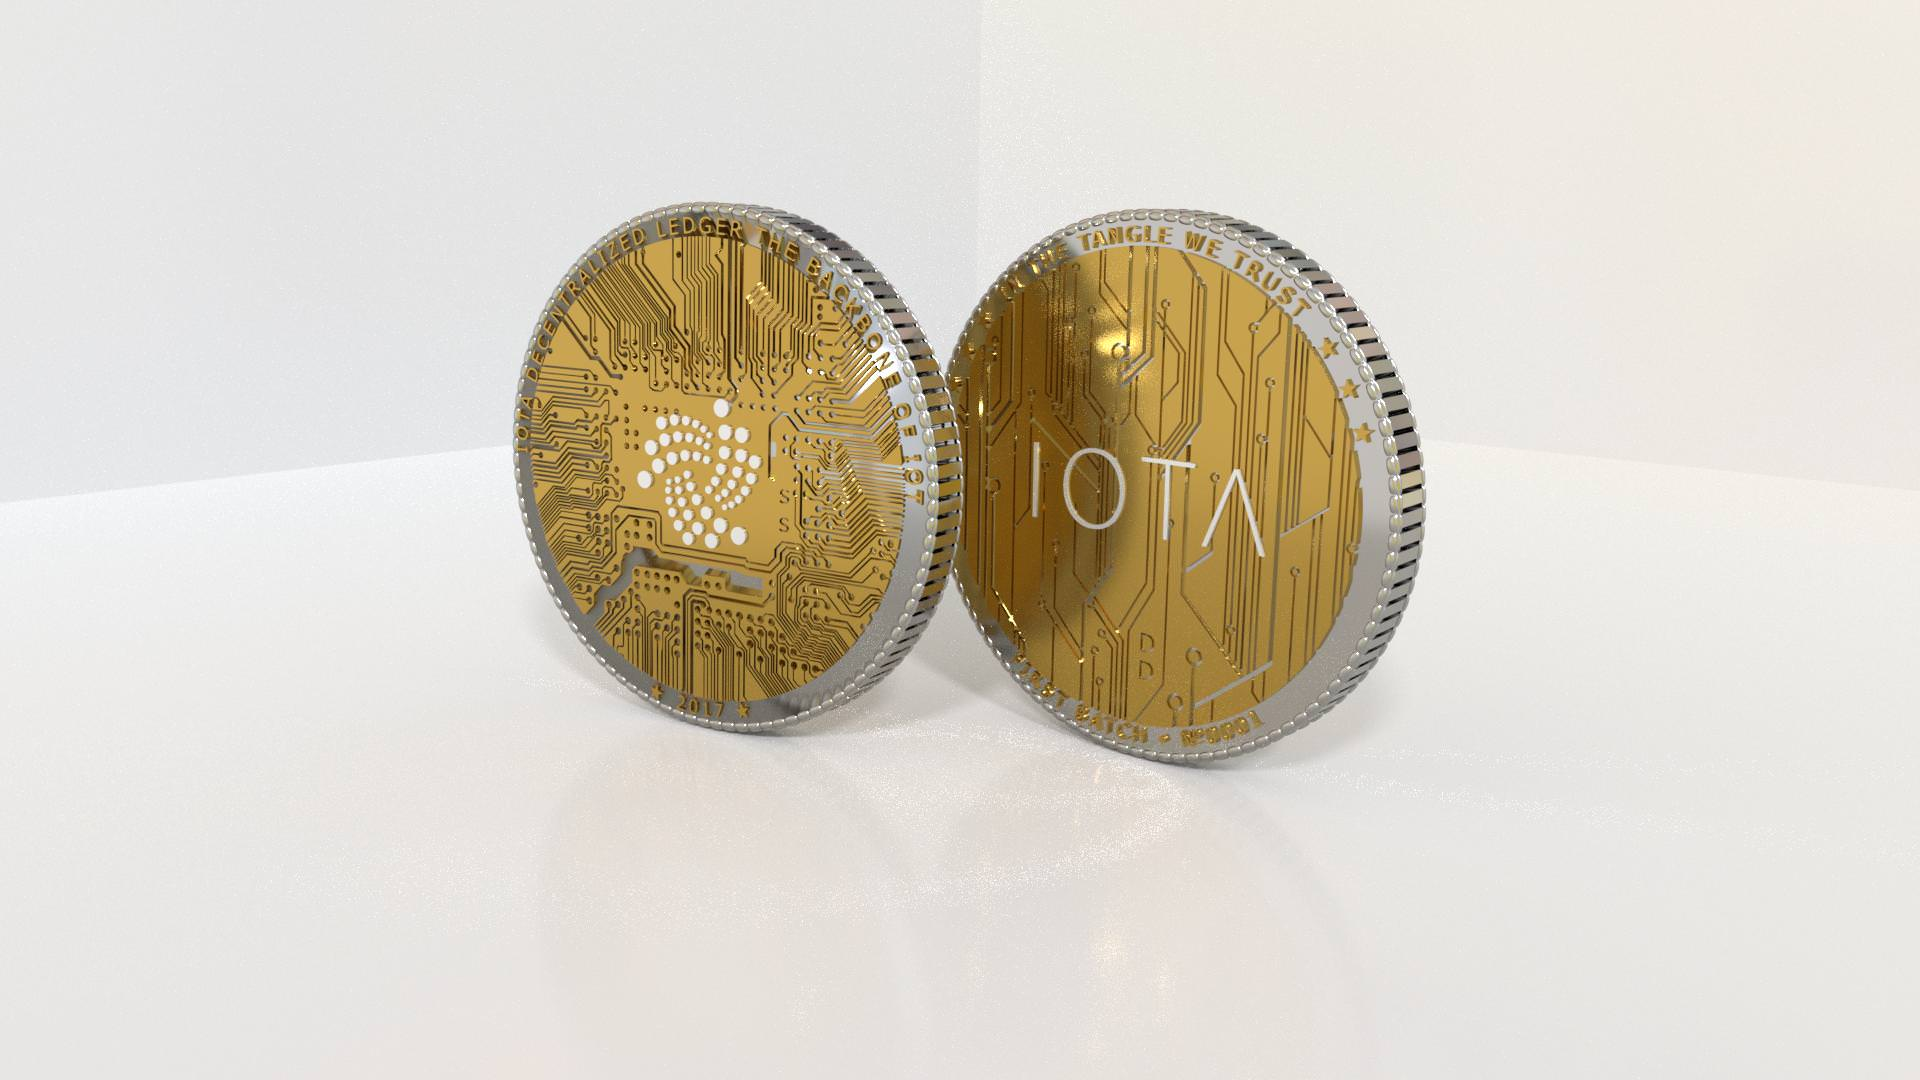 IOTA Minted Coin -Official Project Reddit Thread  -  Follow here